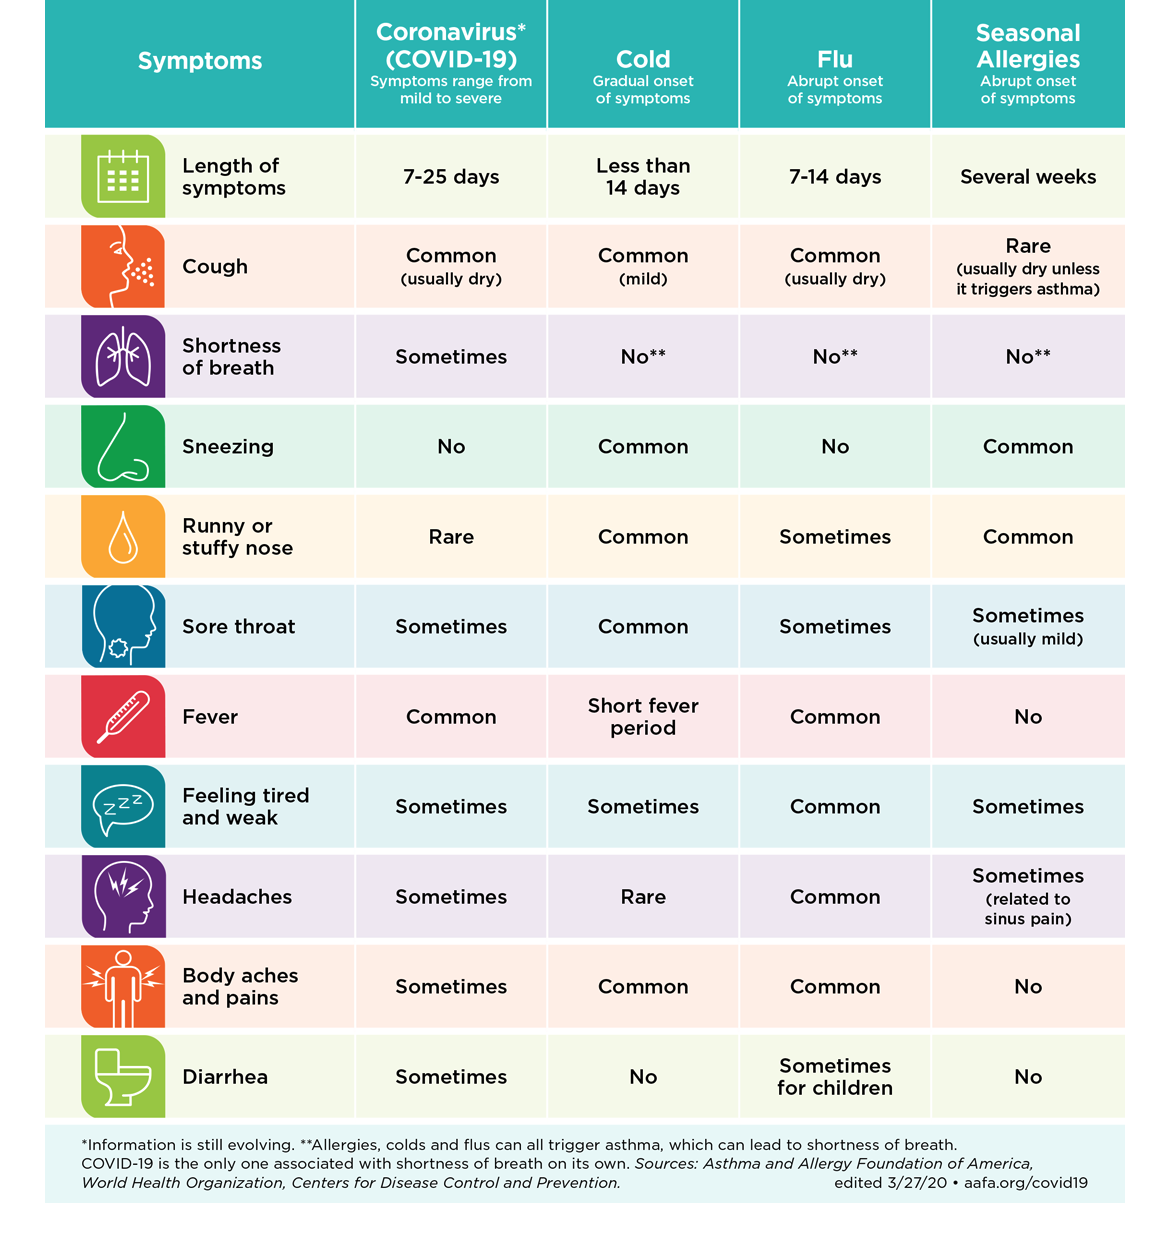 Abled.ALERT: Symptoms comparison map for Allergies, Cold, Flu and COVID-19. Text list in previous report or FAQS section.